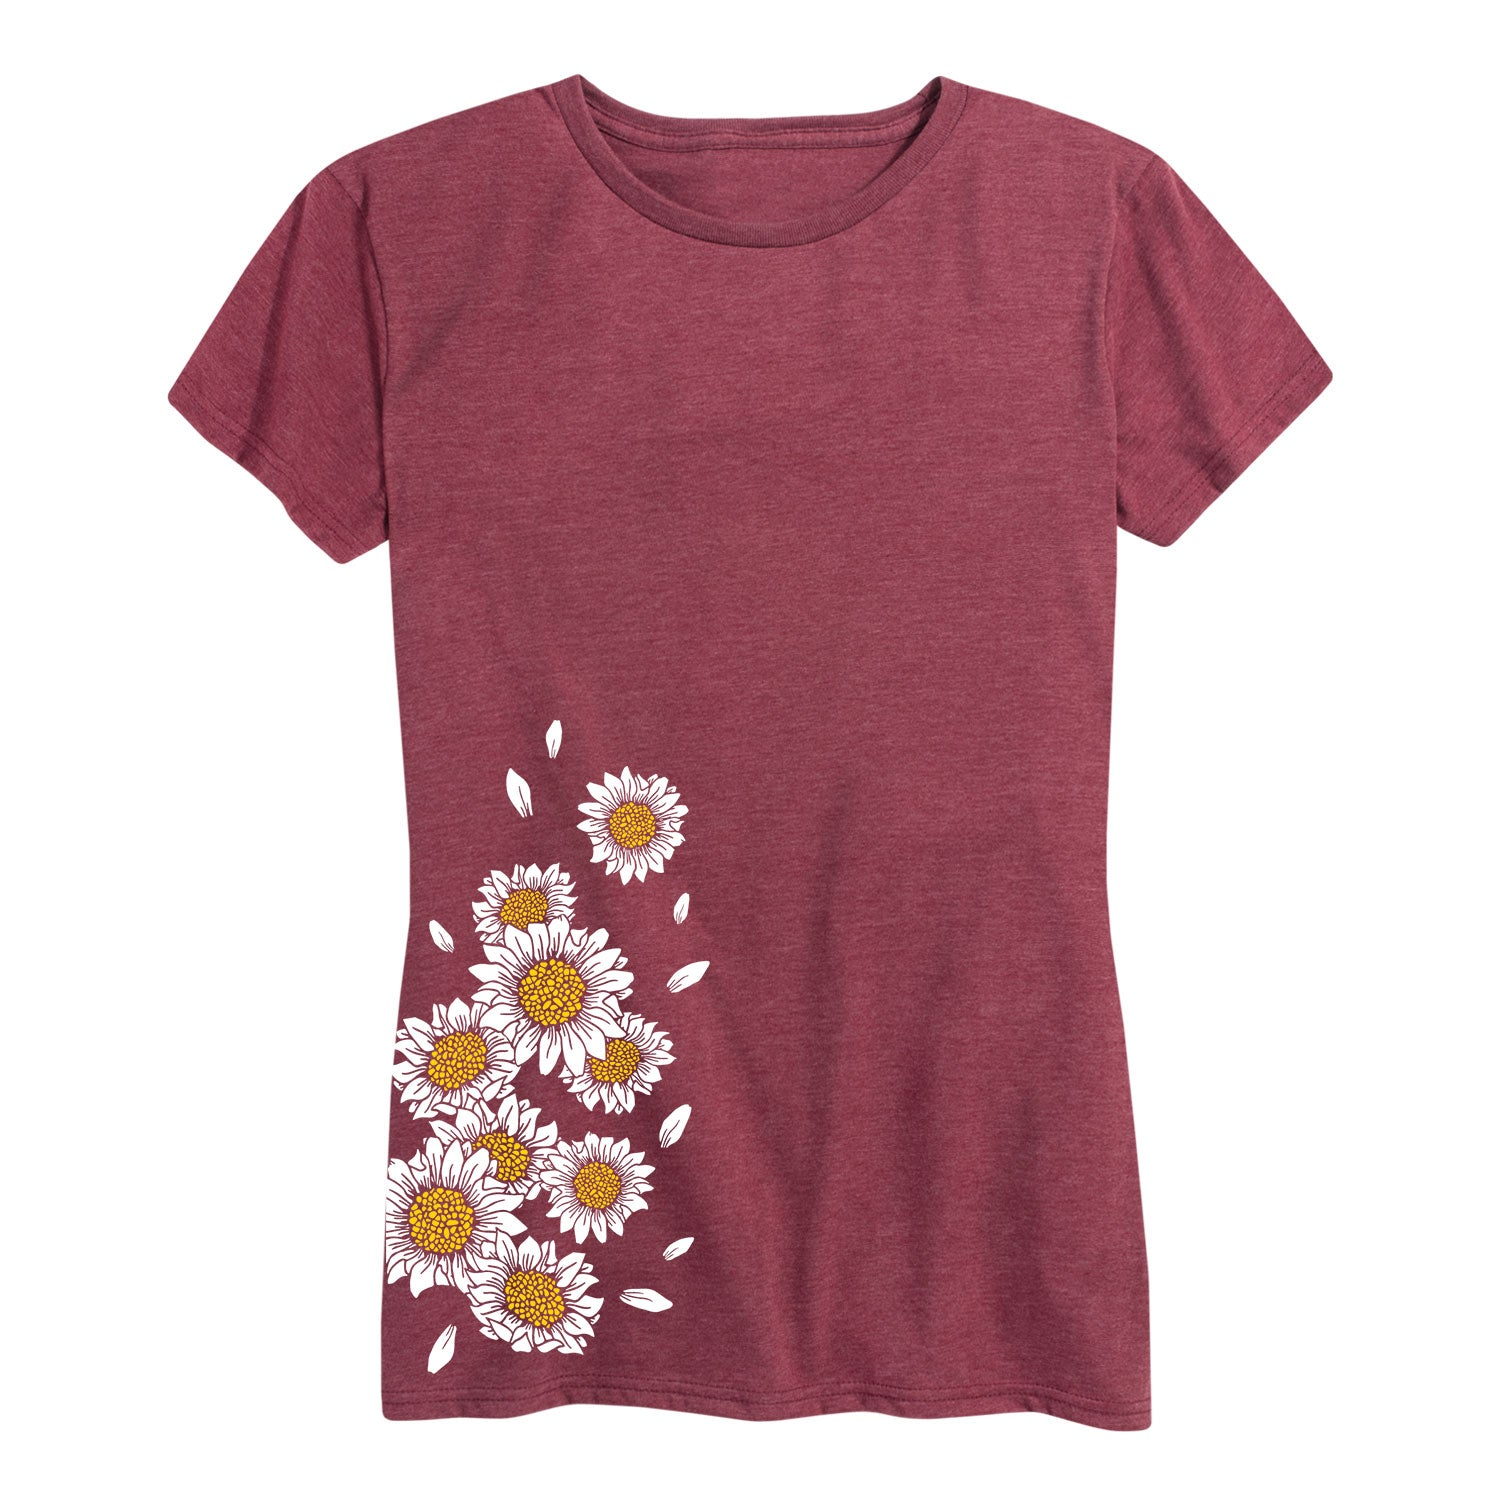 Daisies Side Hit - Women's Short Sleeve T-Shirt